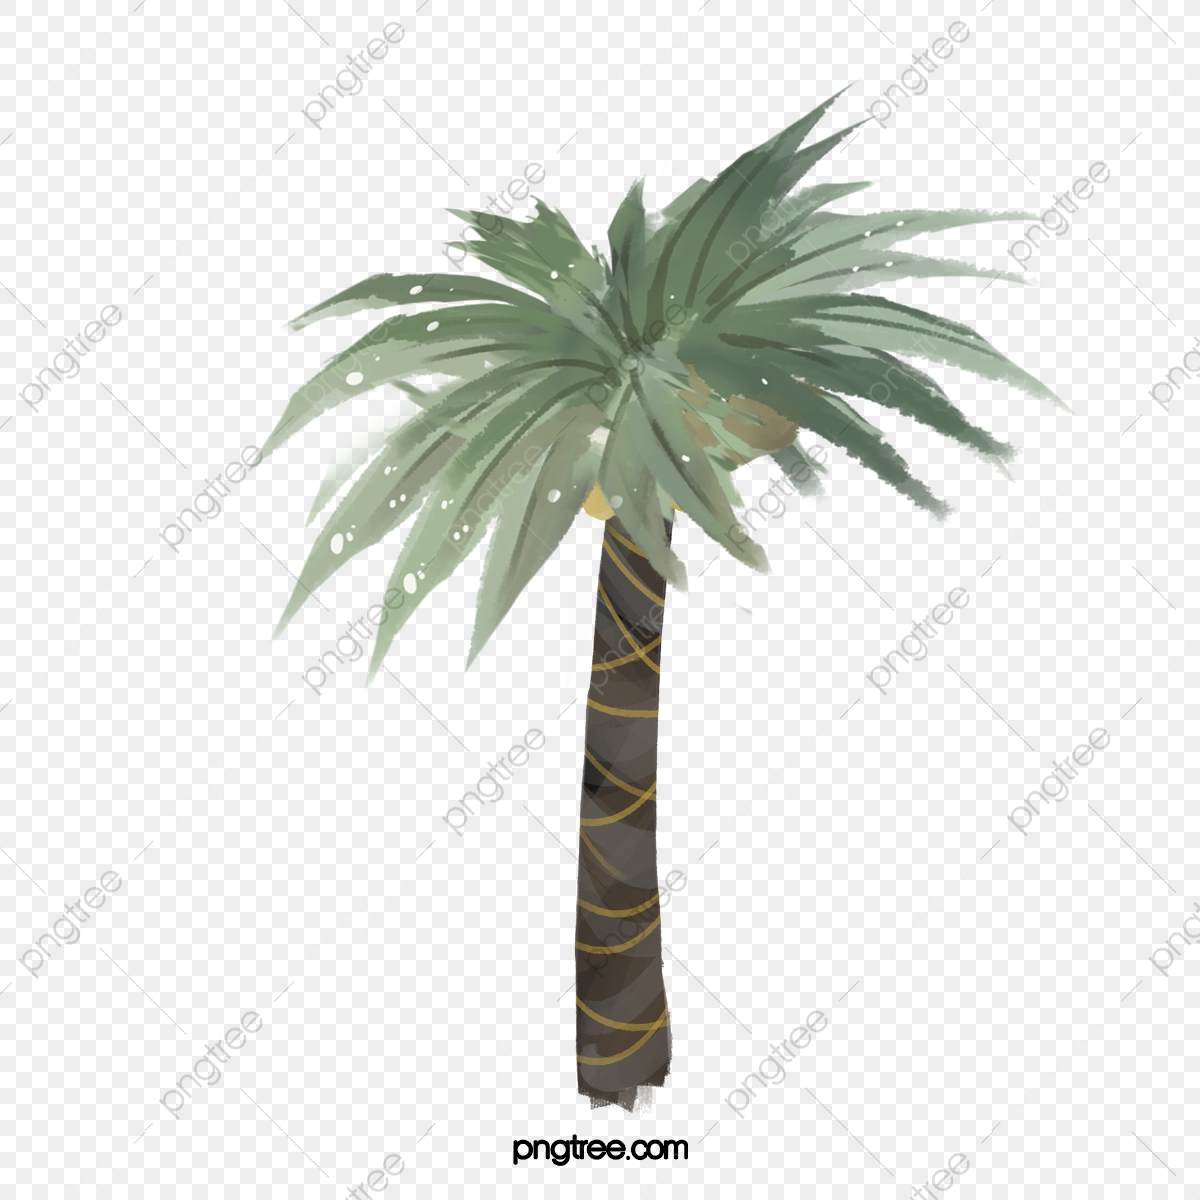 Date Palm Trees, Plant, Trees, Plants PNG Transparent